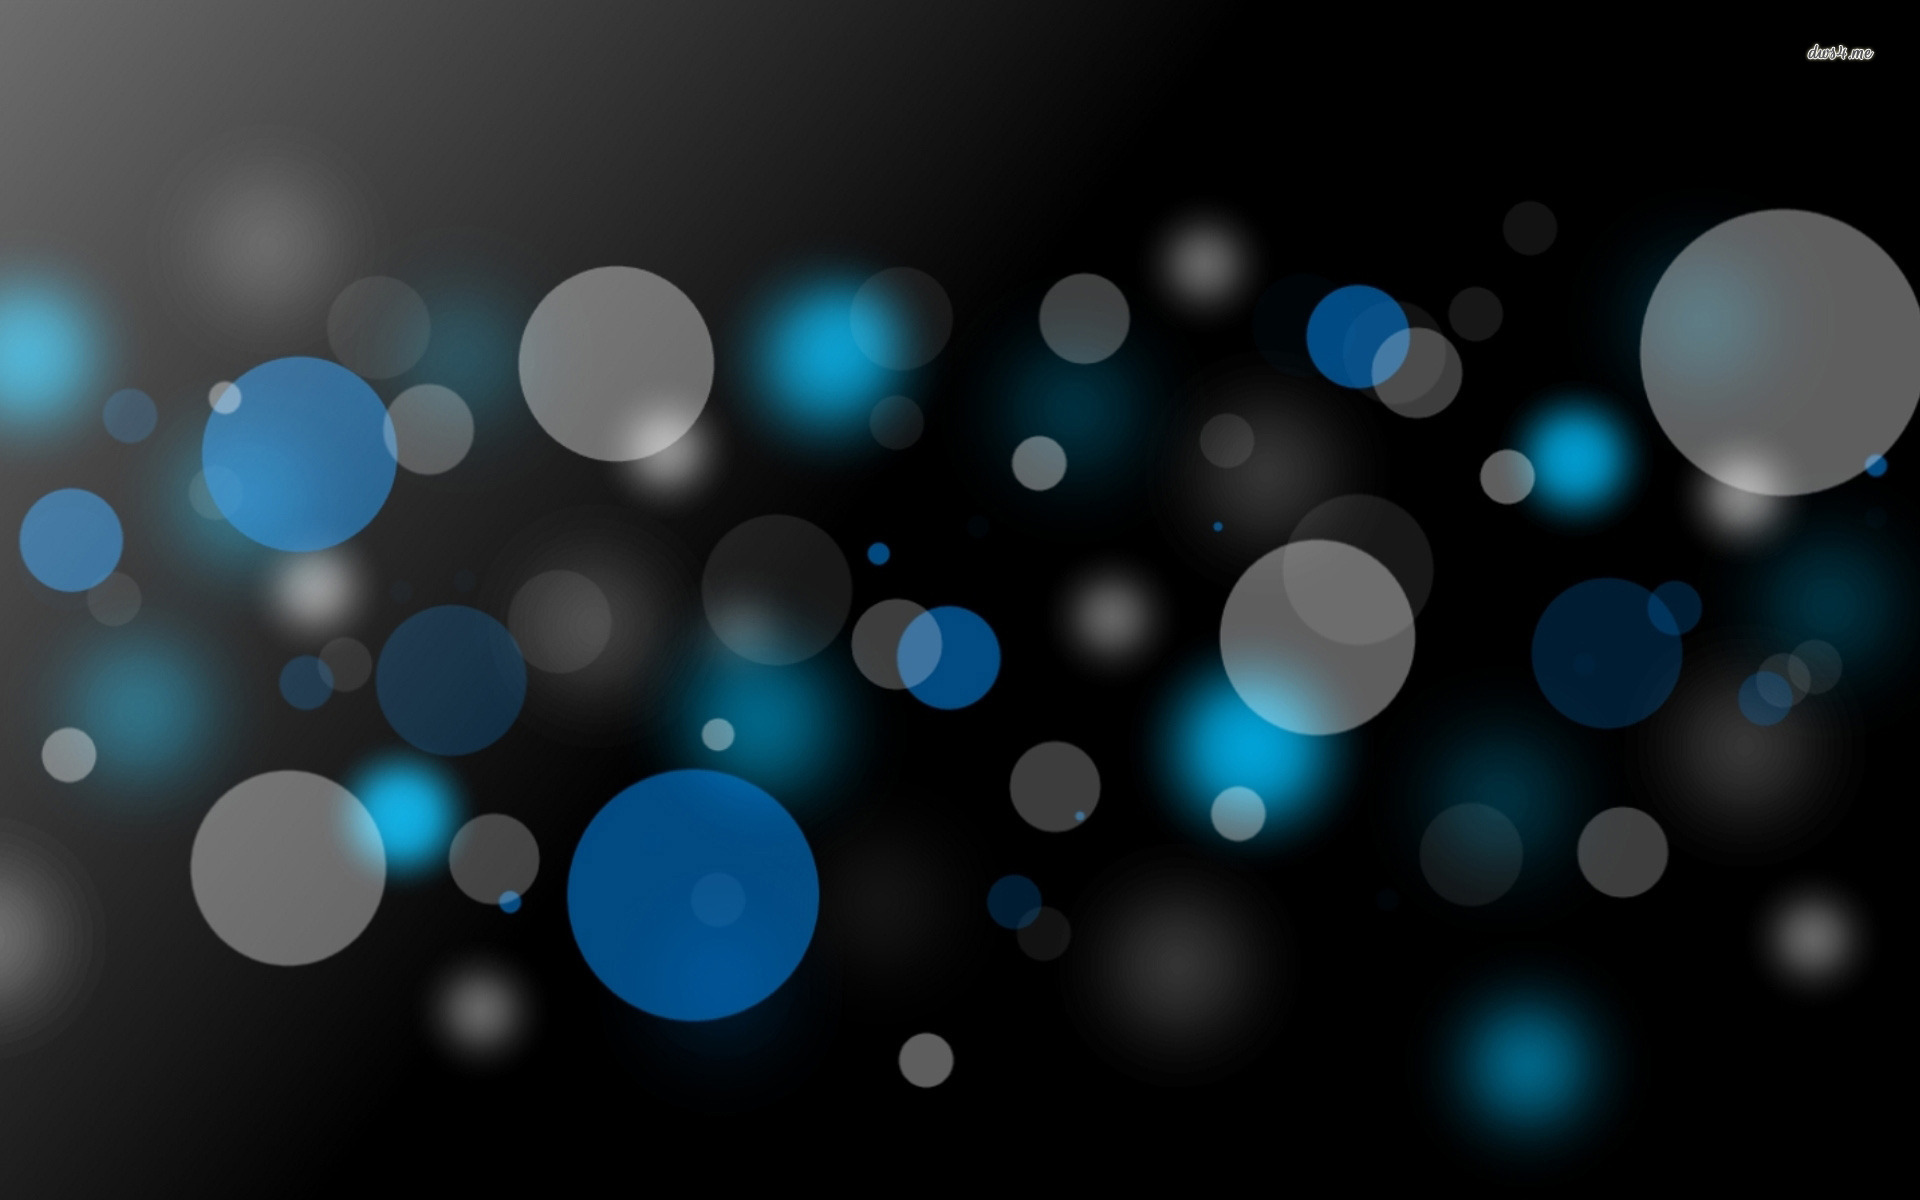 ... Glowing bubbles wallpaper 1920x1200 ...